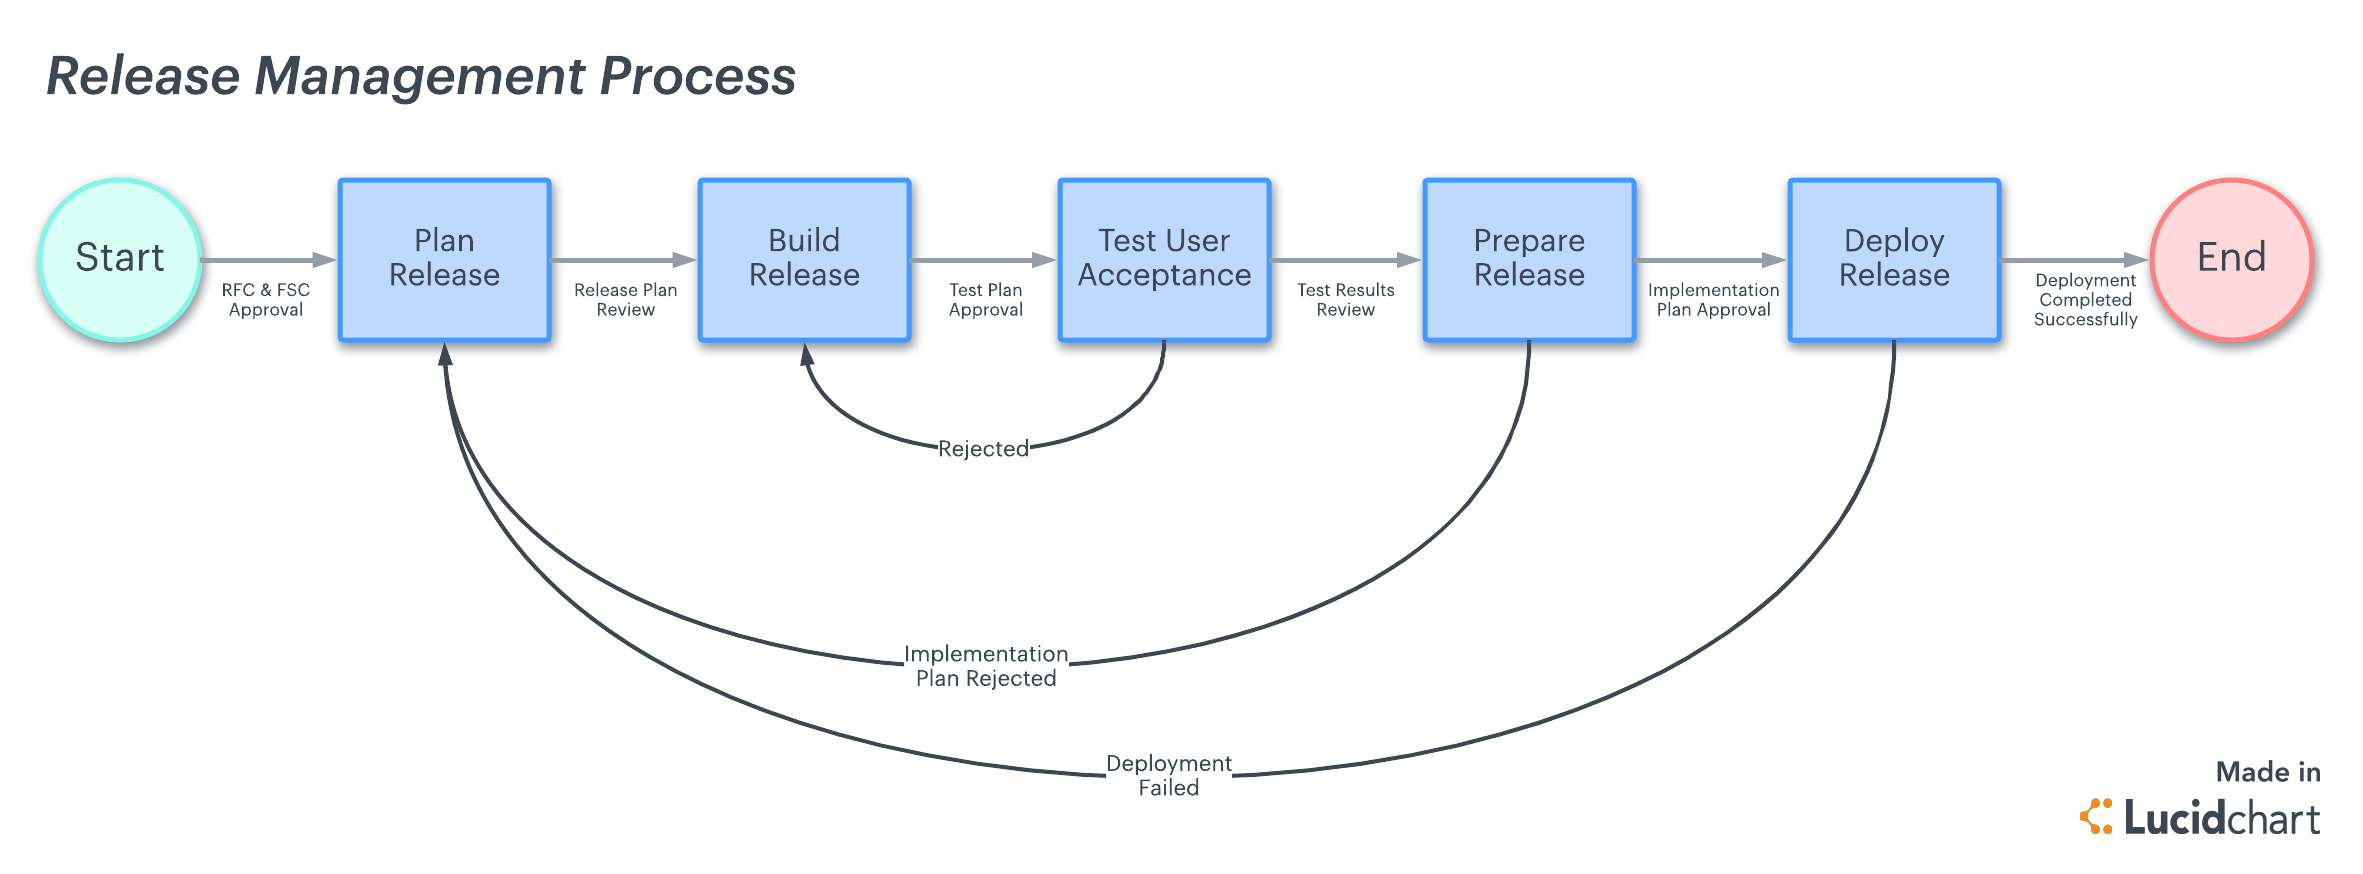 5 Steps to a Successful Release Management Process | Lucidchart Blog